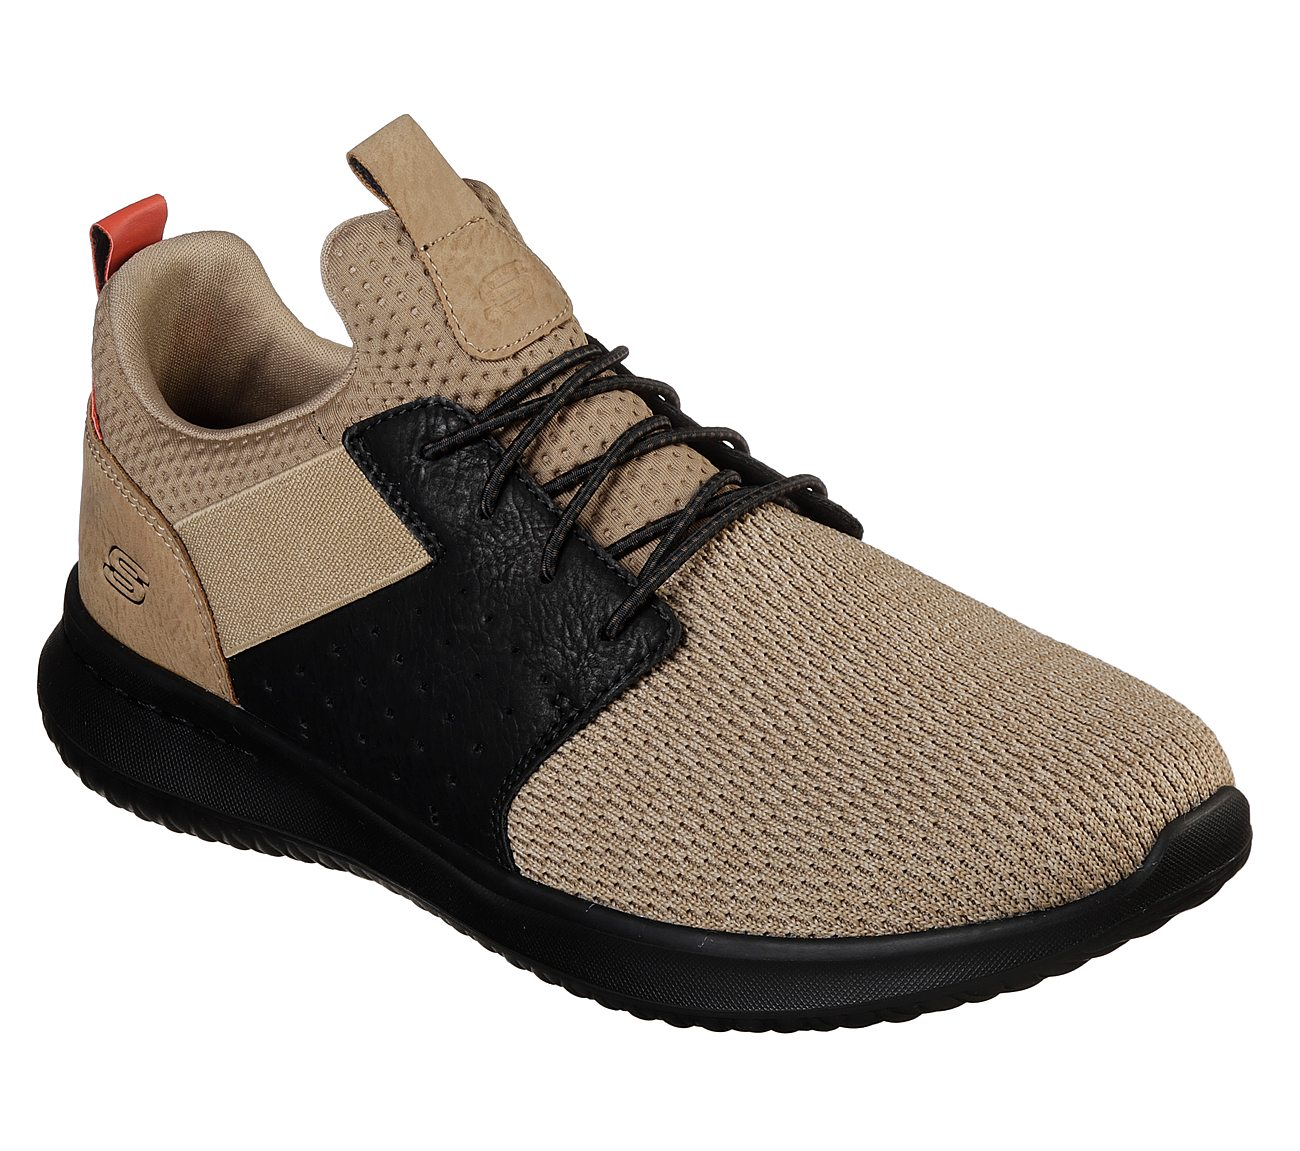 7fa3930c08b0 Buy SKECHERS Delson - Camben USA Casuals Shoes only  70.00